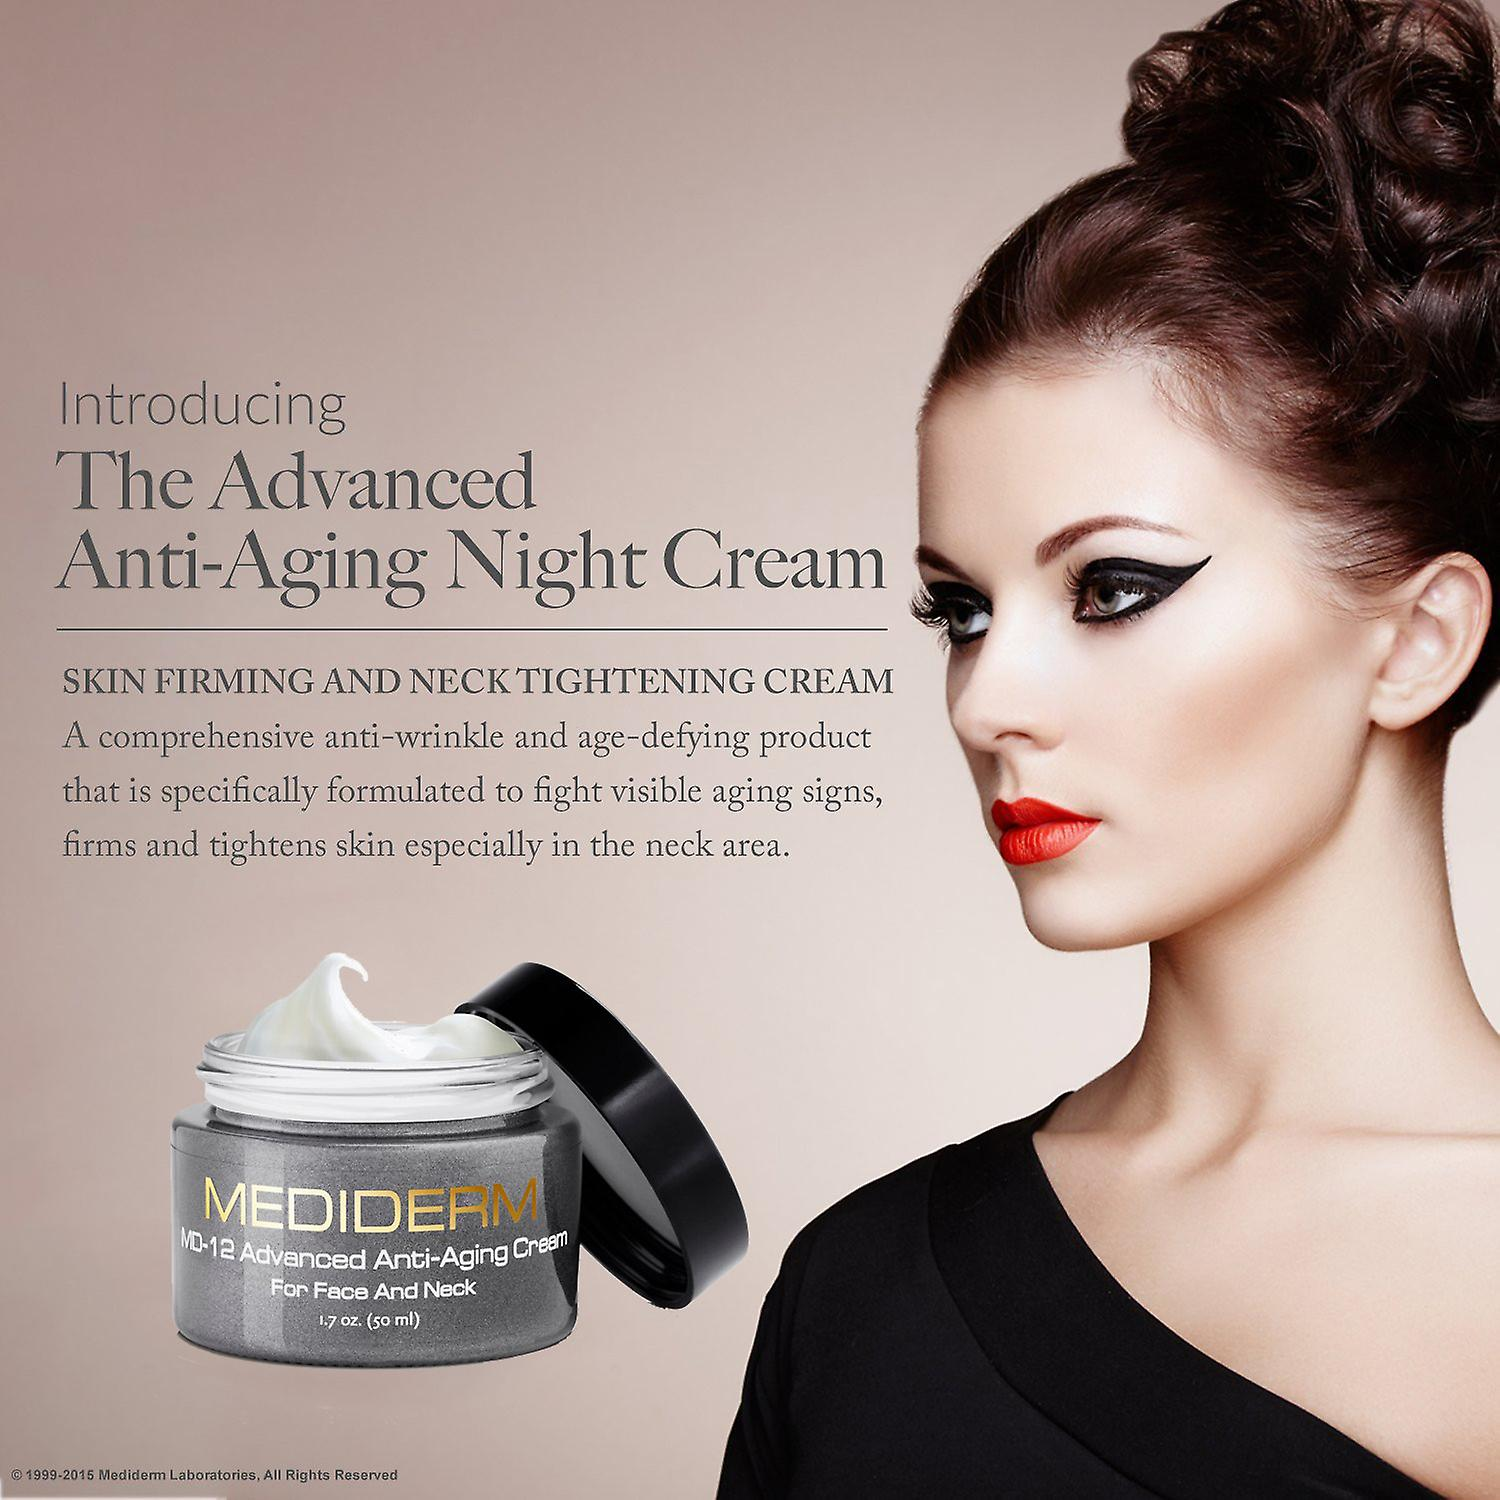 Mediderm MD-12 Advanced Anti-Aging-Creme